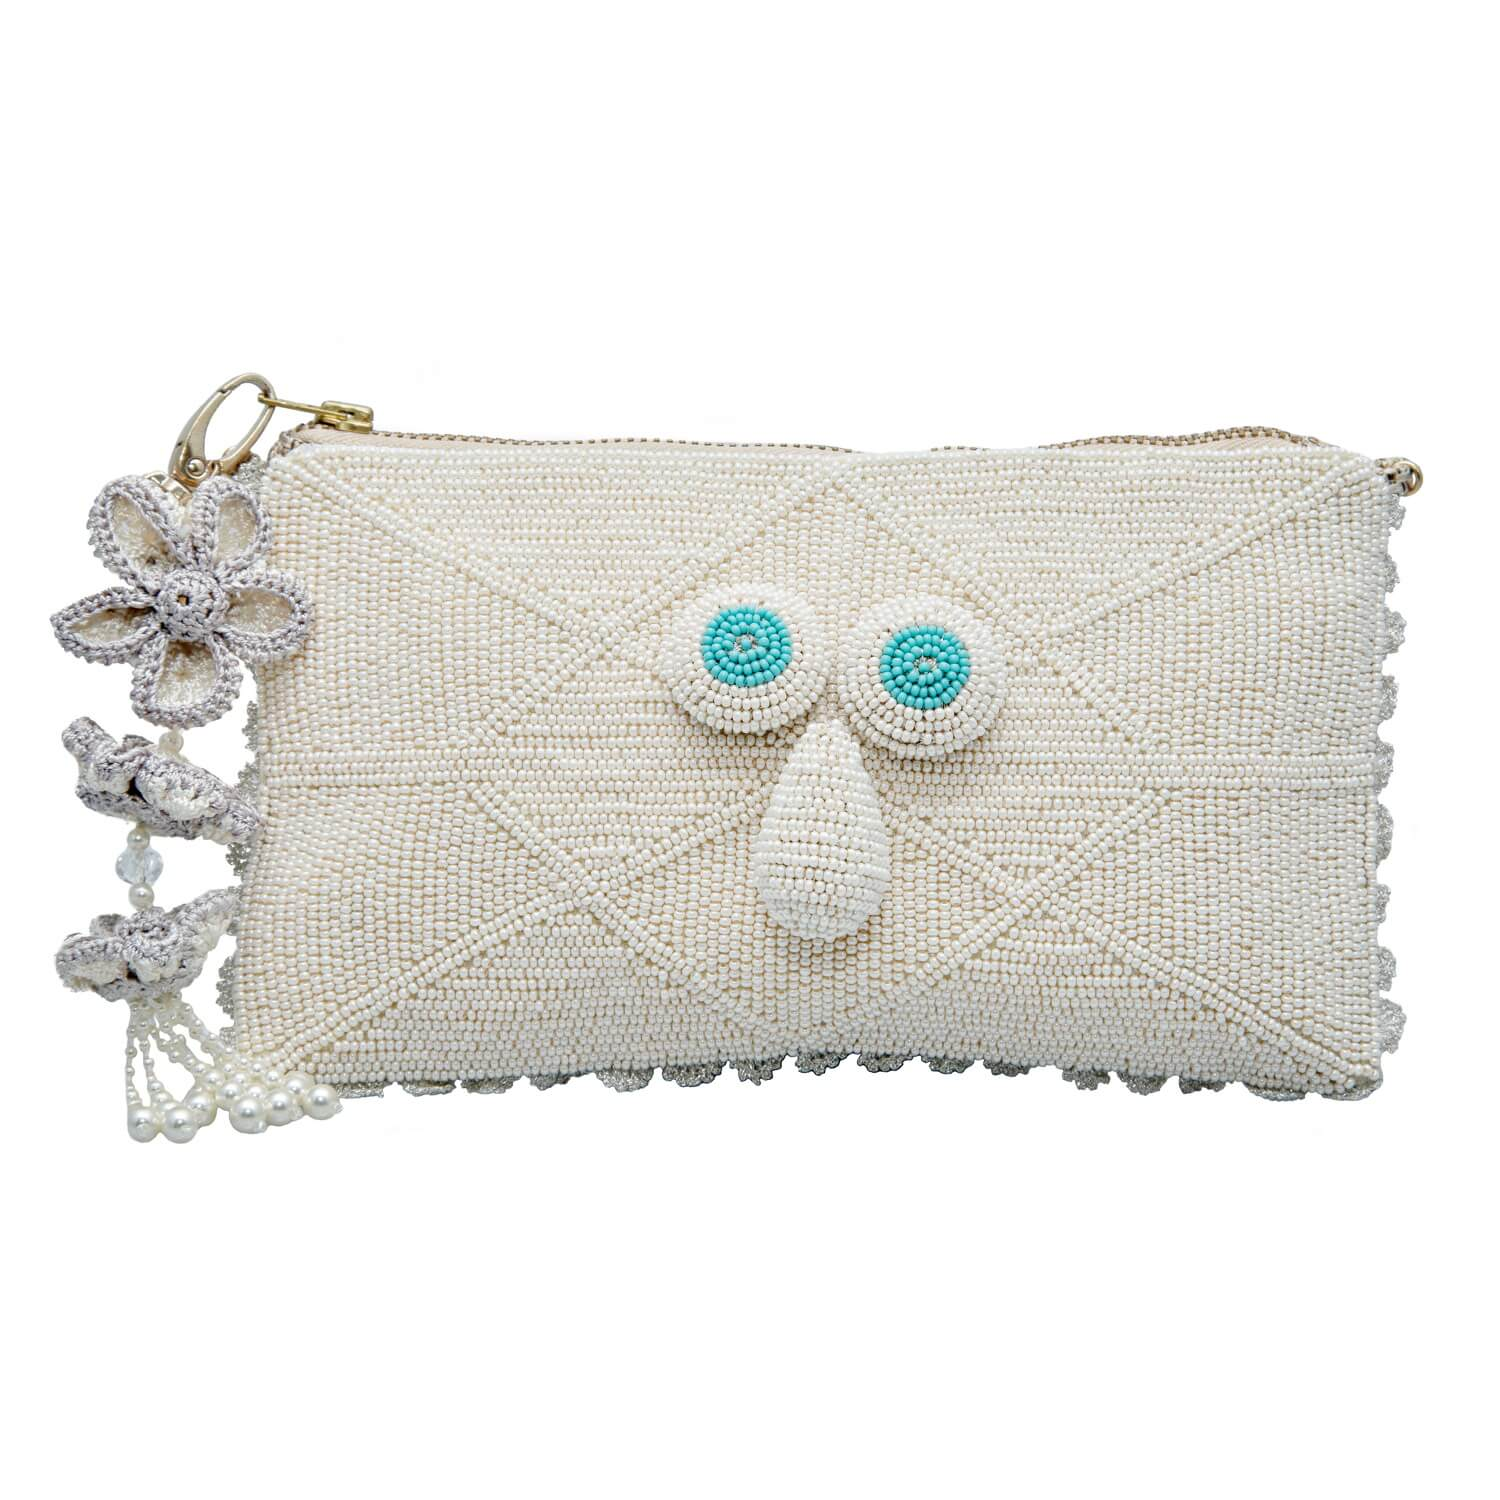 Koshi Evening Pouch- Ivory